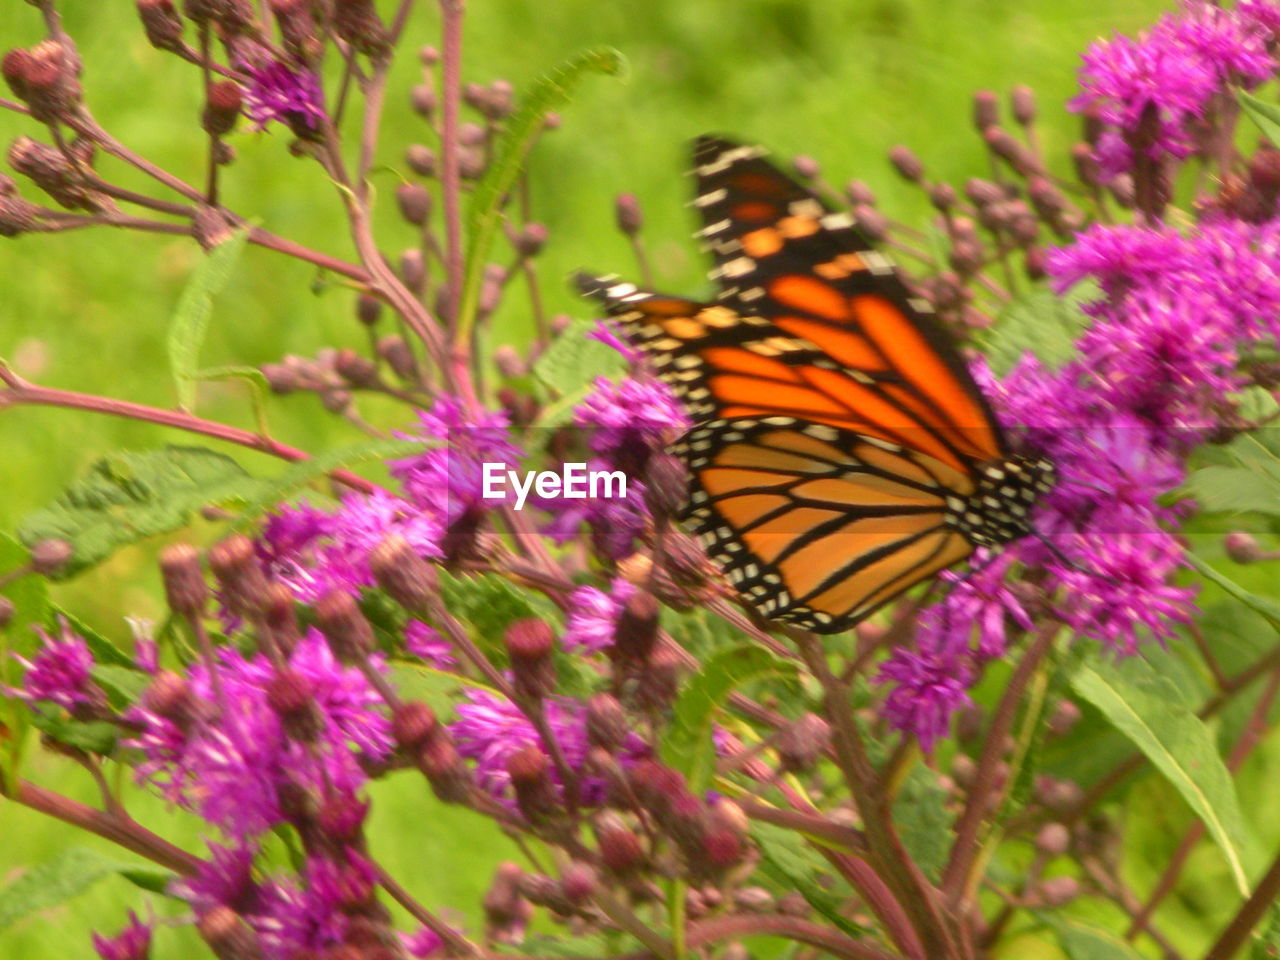 flower, flowering plant, animal, plant, beauty in nature, animal themes, animal wildlife, invertebrate, insect, one animal, fragility, vulnerability, freshness, growth, animals in the wild, animal wing, butterfly - insect, petal, close-up, flower head, pollination, no people, pink color, purple, outdoors, butterfly